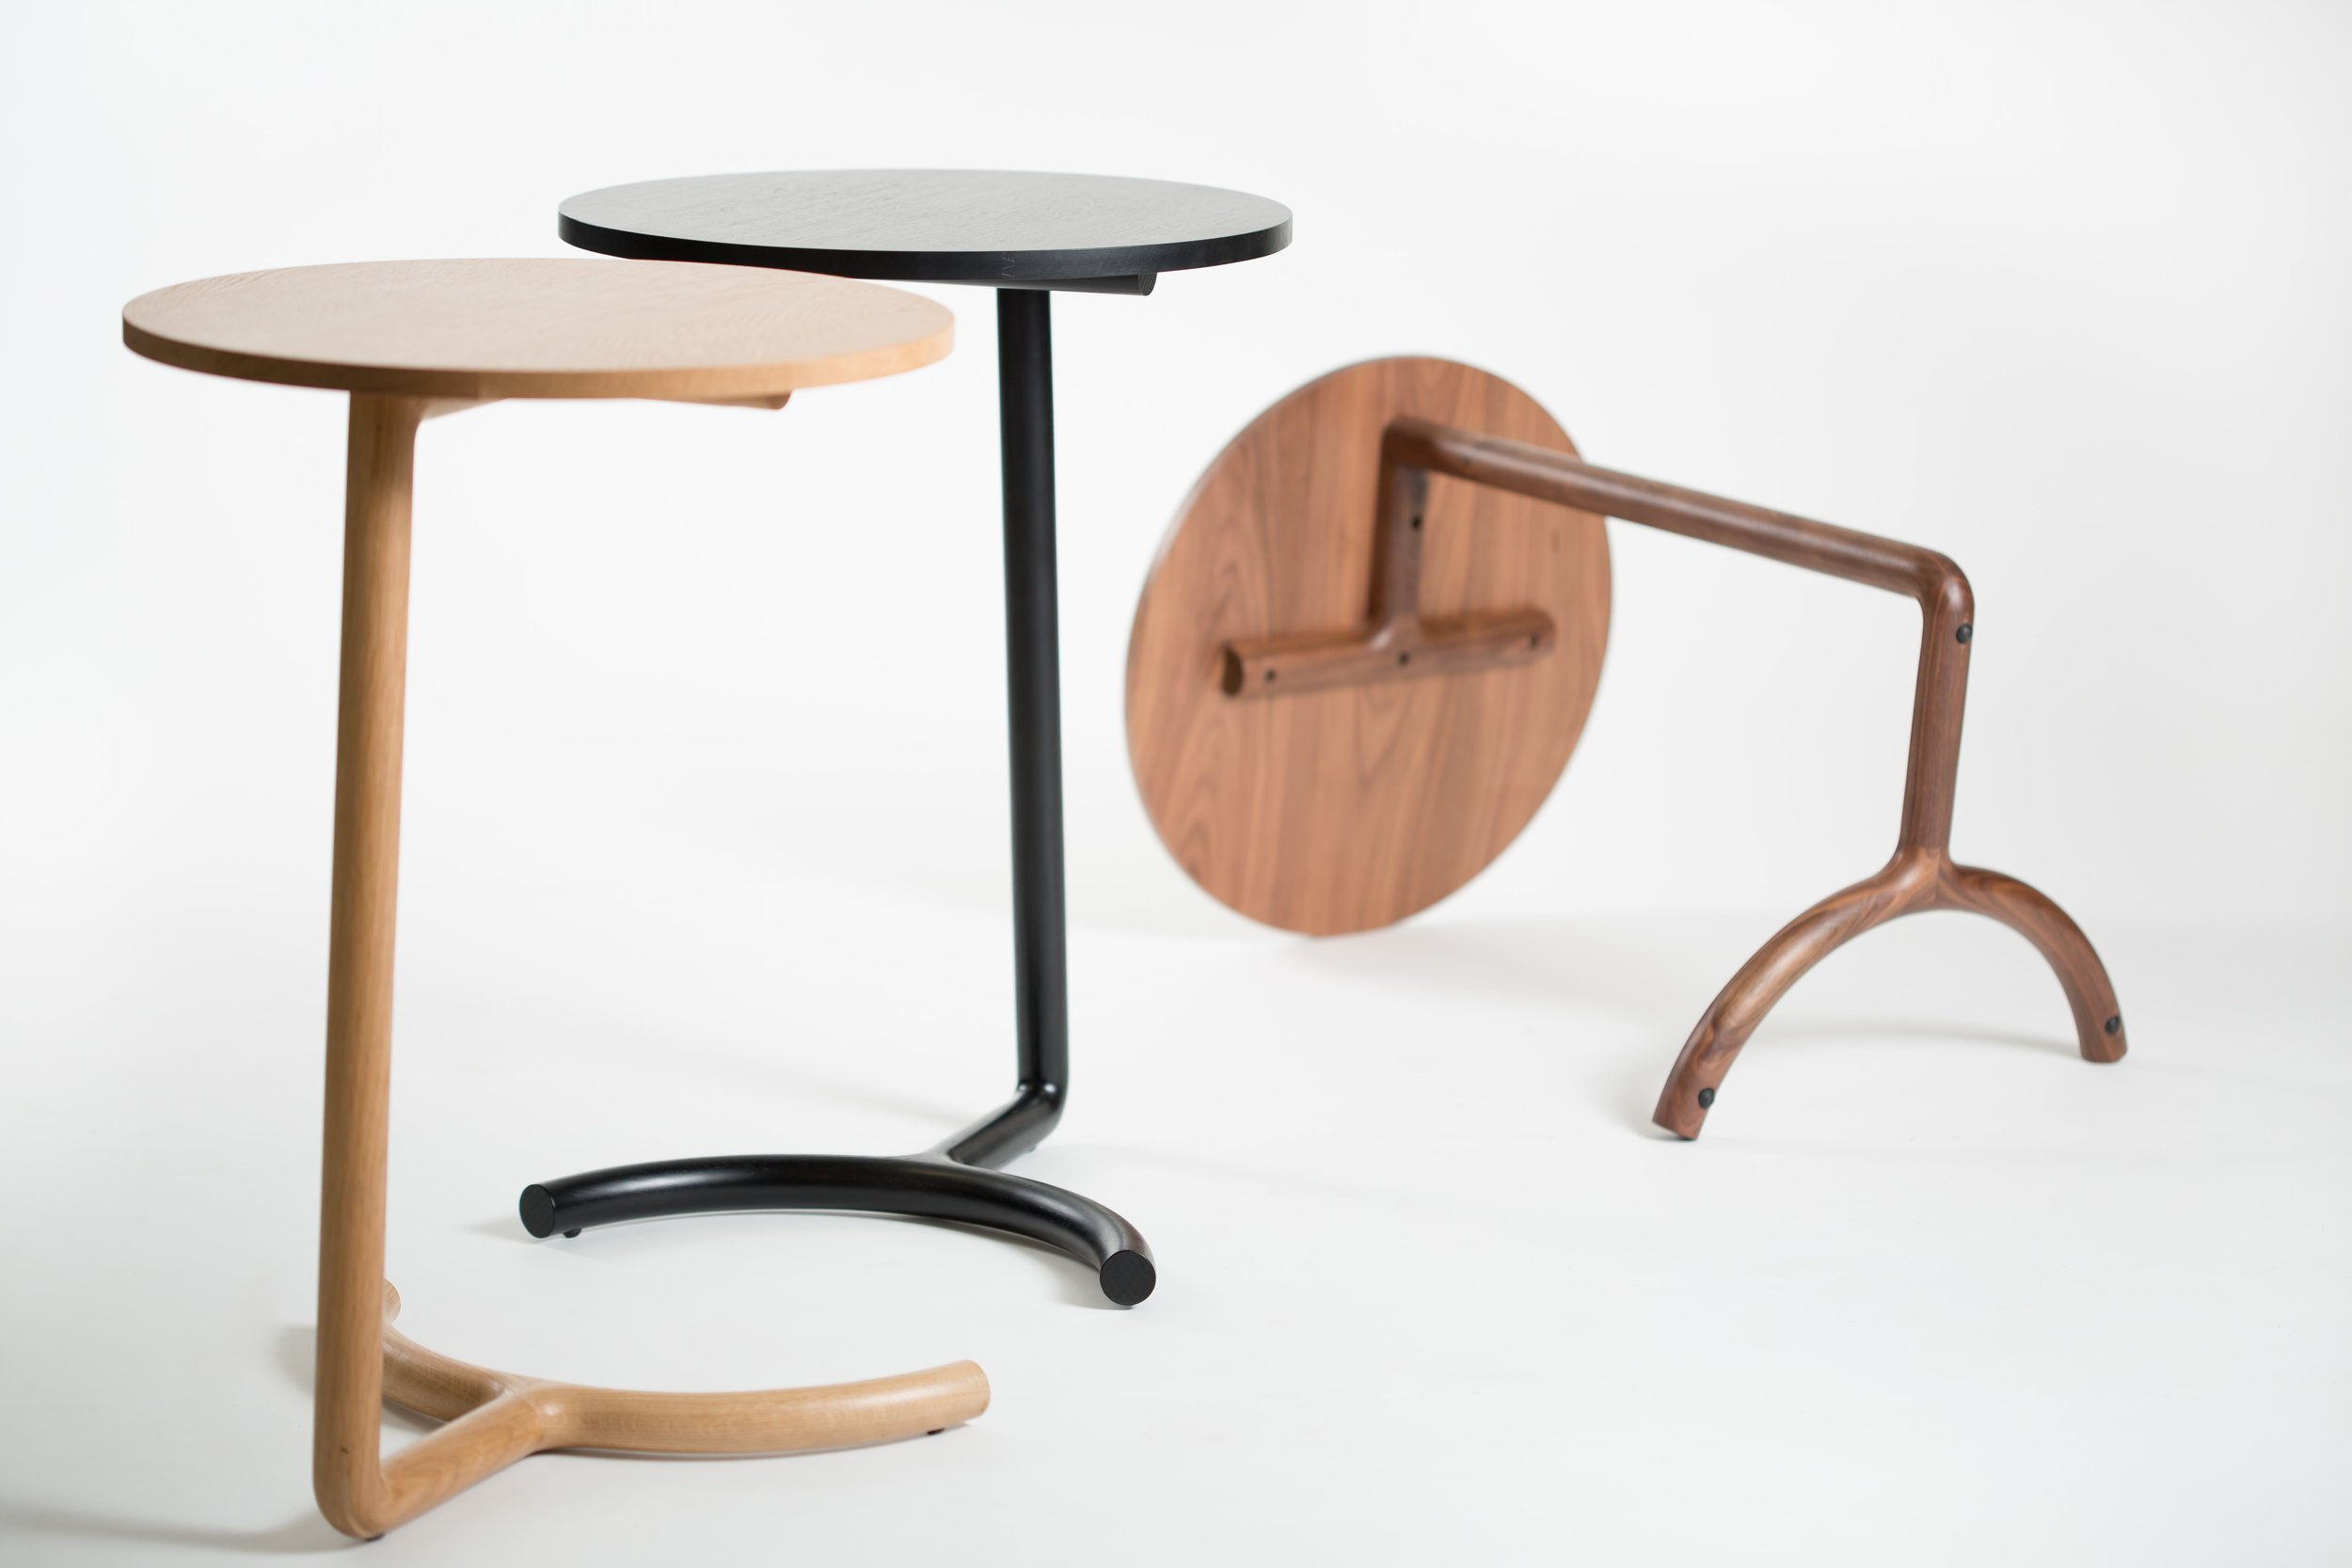 Nicholas Fuller's 'Cantilever' tables have gone from limited edition pieces shown last year at Craft ACT to going into production and winning the Denfair Front / Centre Emerging Designer Award.